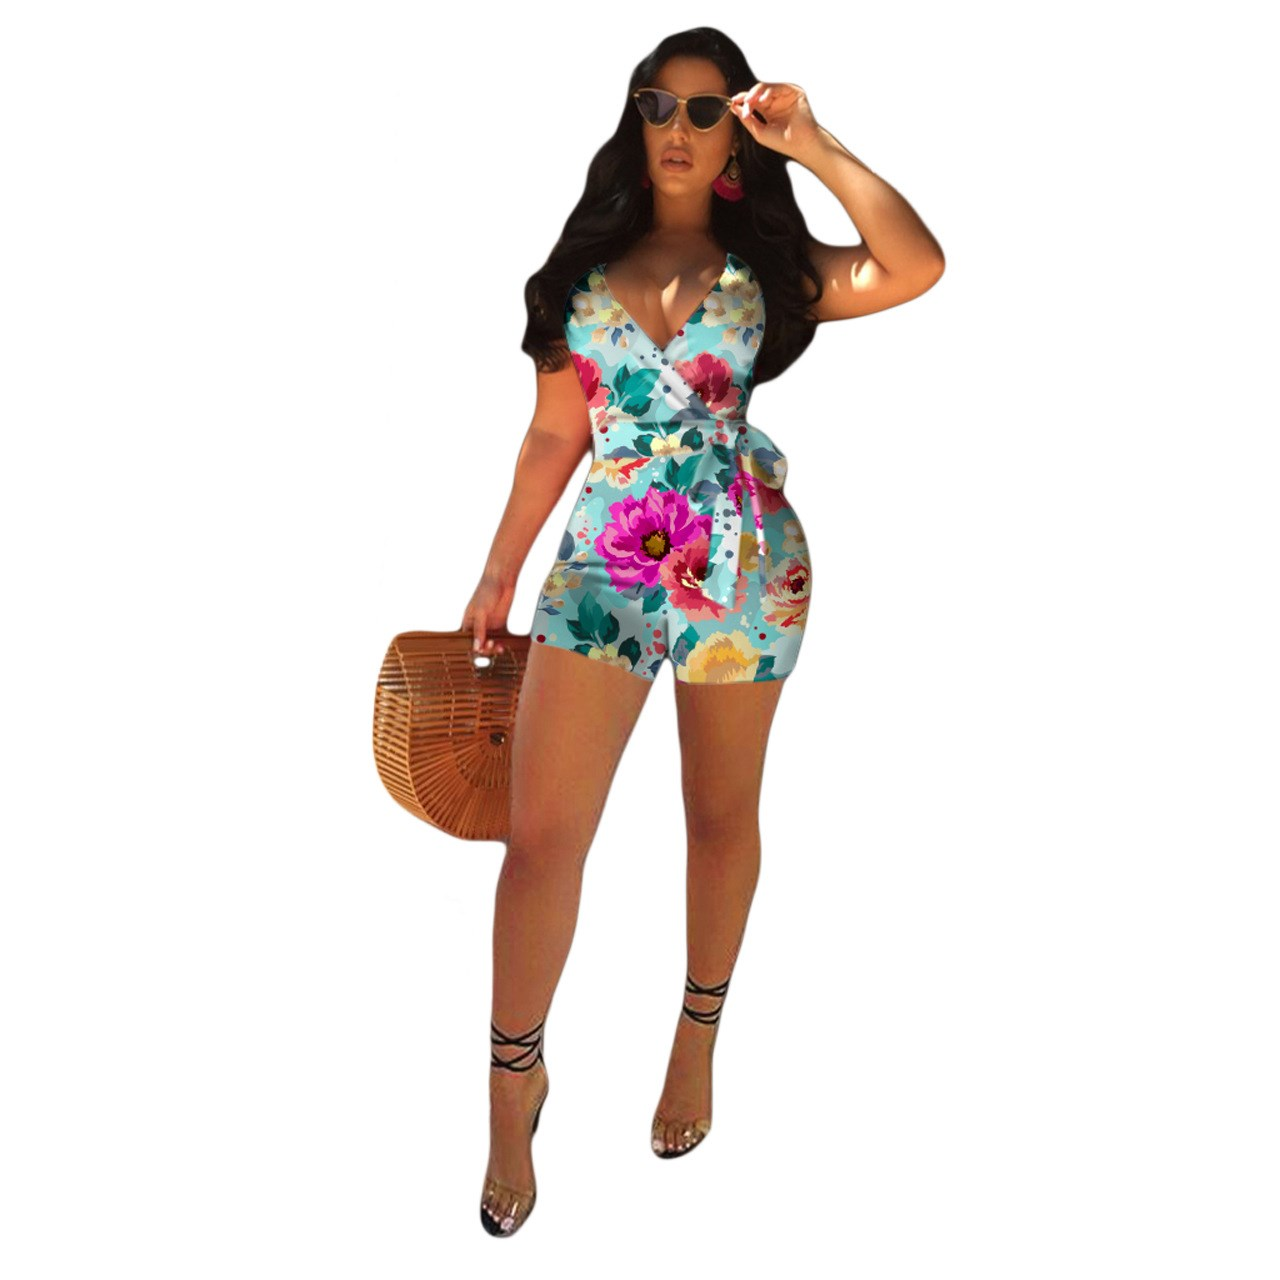 Women Fashion Print Jumpsuit Cross Criss Backless High Waist Rompers Sexy Nightclub Rompers Summer Strap Shorts Bodysuit